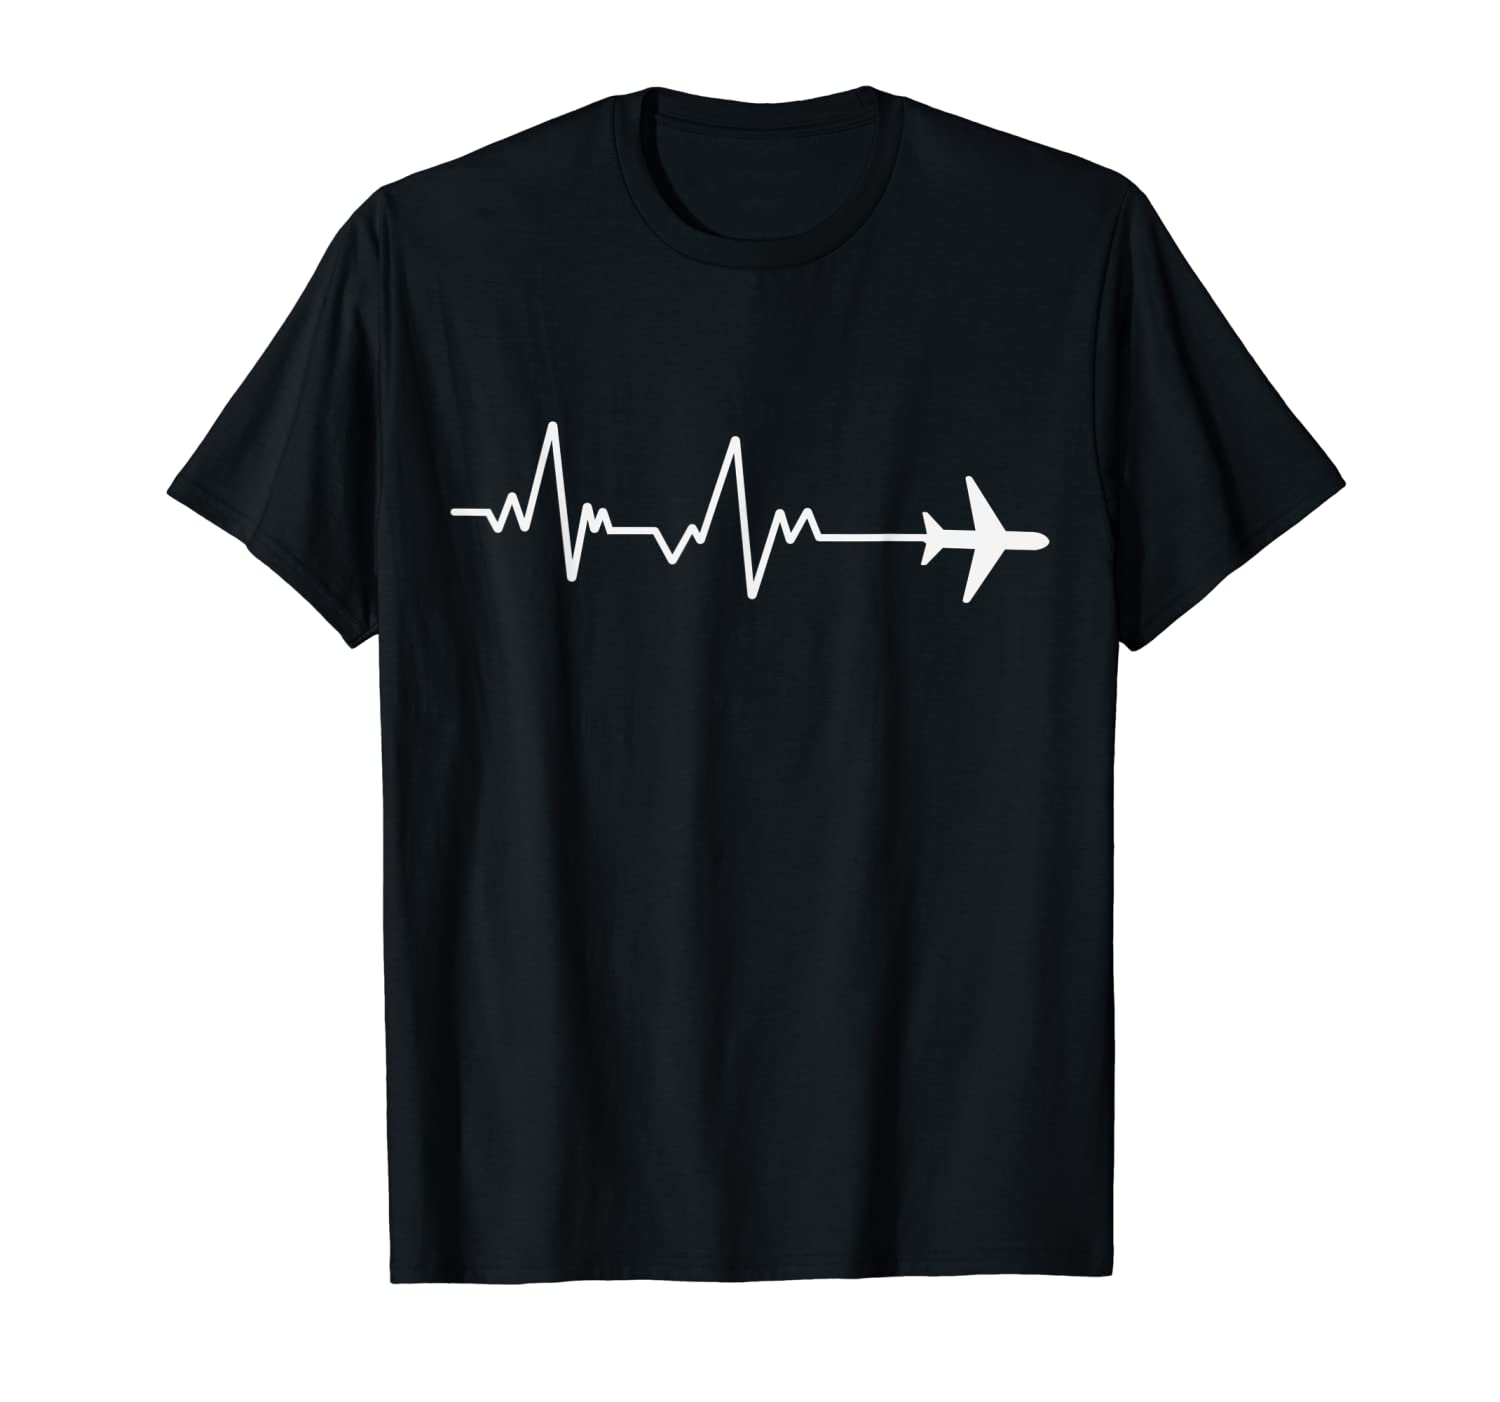 1d7c9ee3 Amazon.com: Heartbeat to travel airplane wanderlust graphic tee shirt:  Clothing